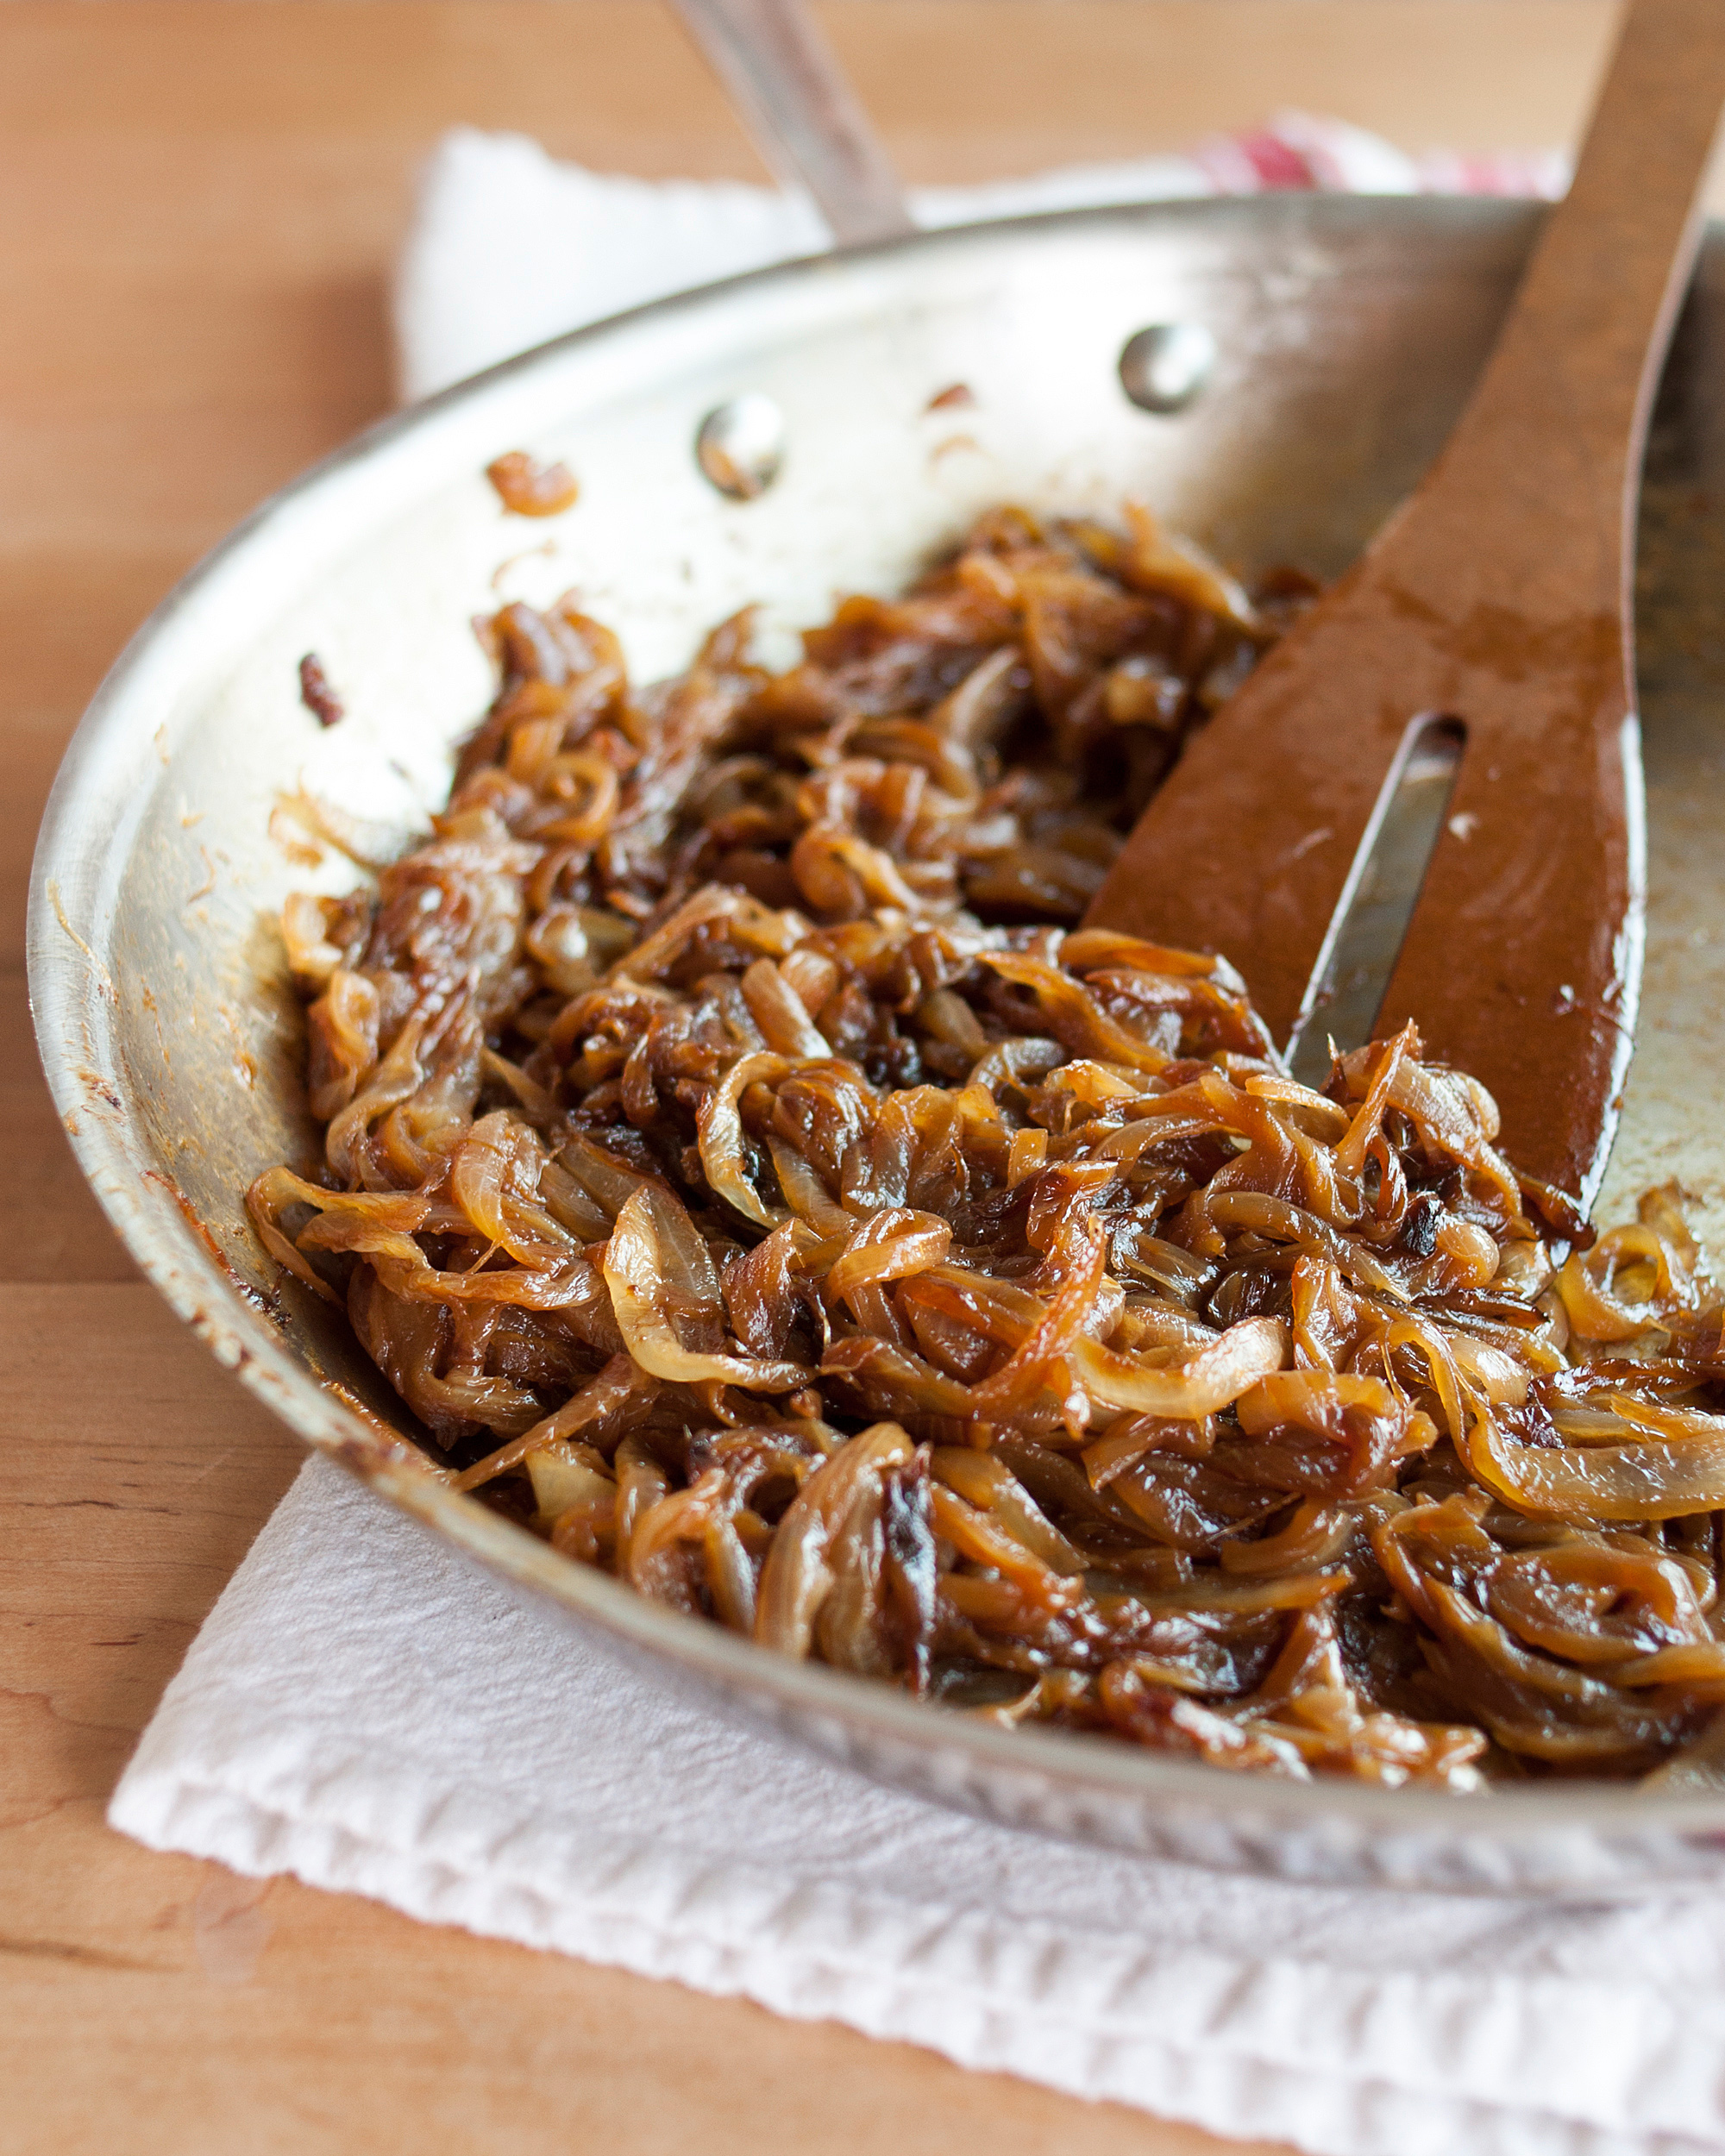 Quick way to make caramelized onions